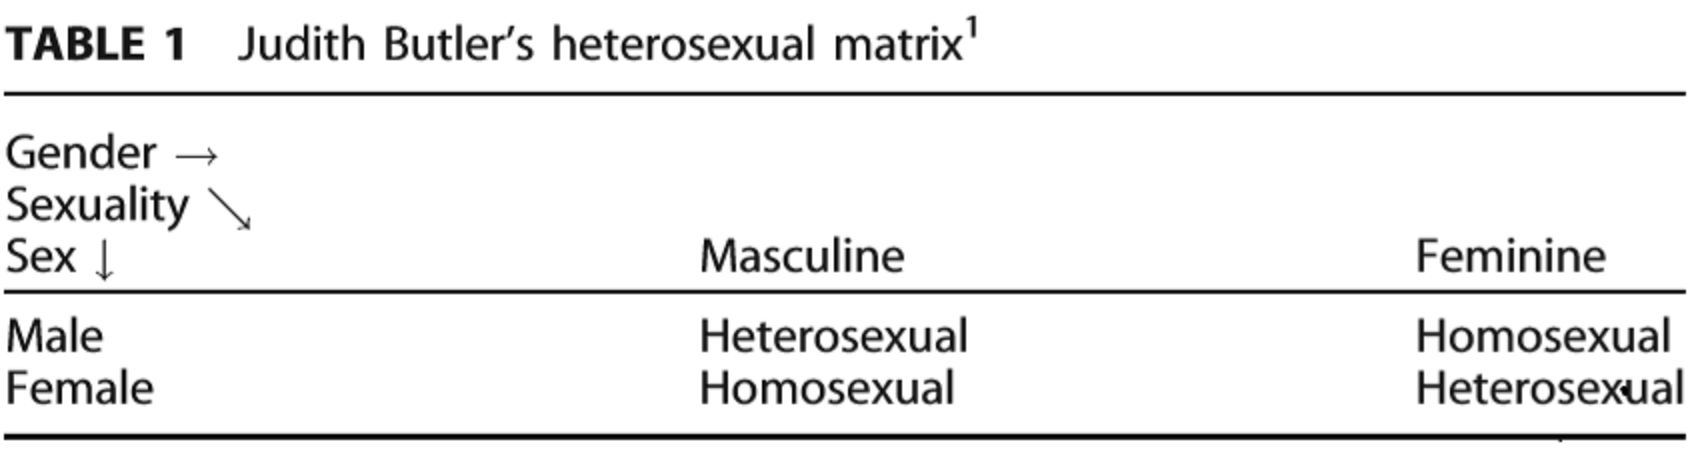 Heterosexuality is a construct tab